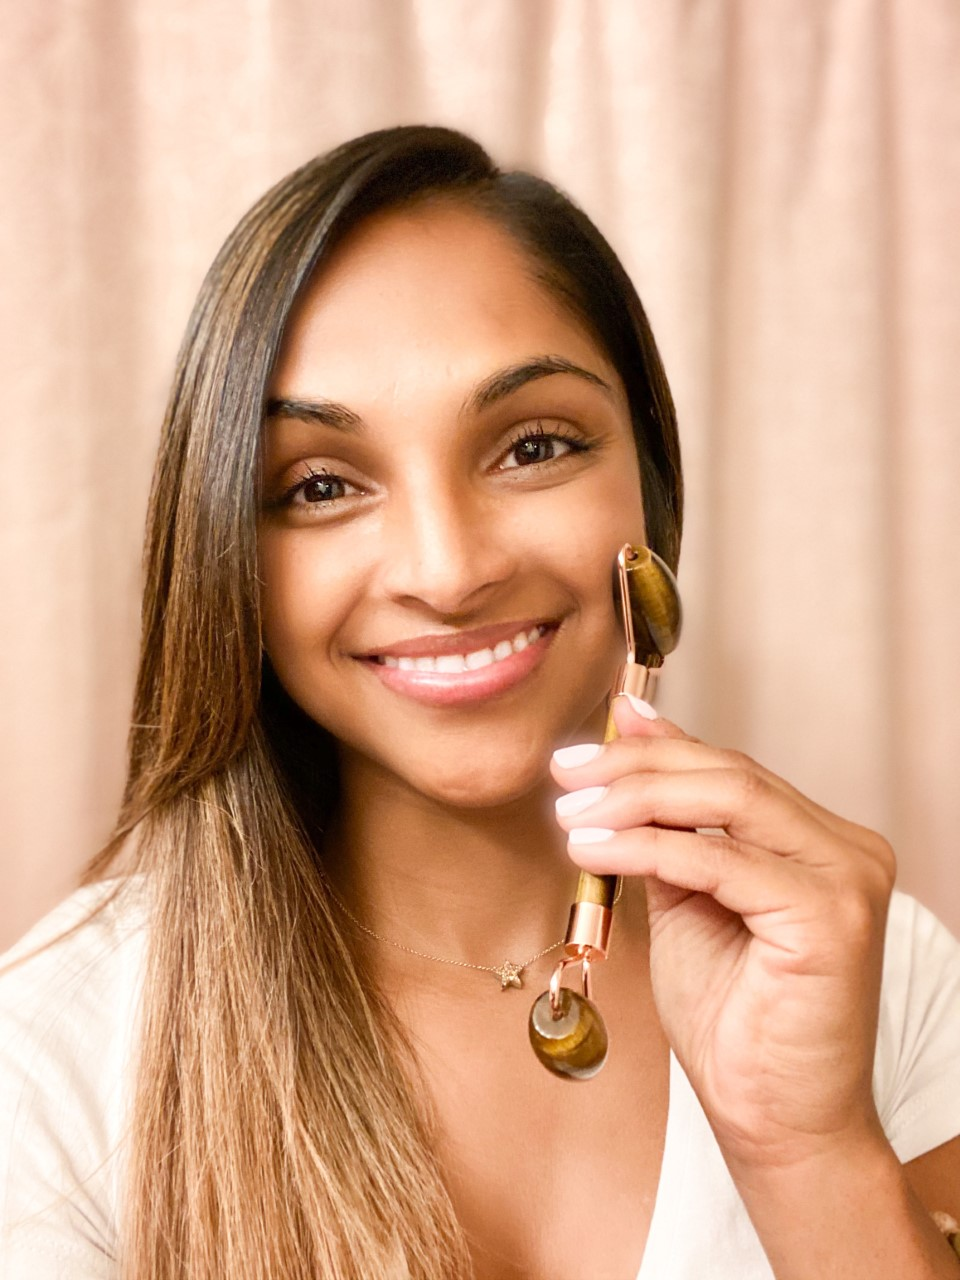 Anjali uses a Whimsy + Wellness gemstone facial roller as part of her skincare routine